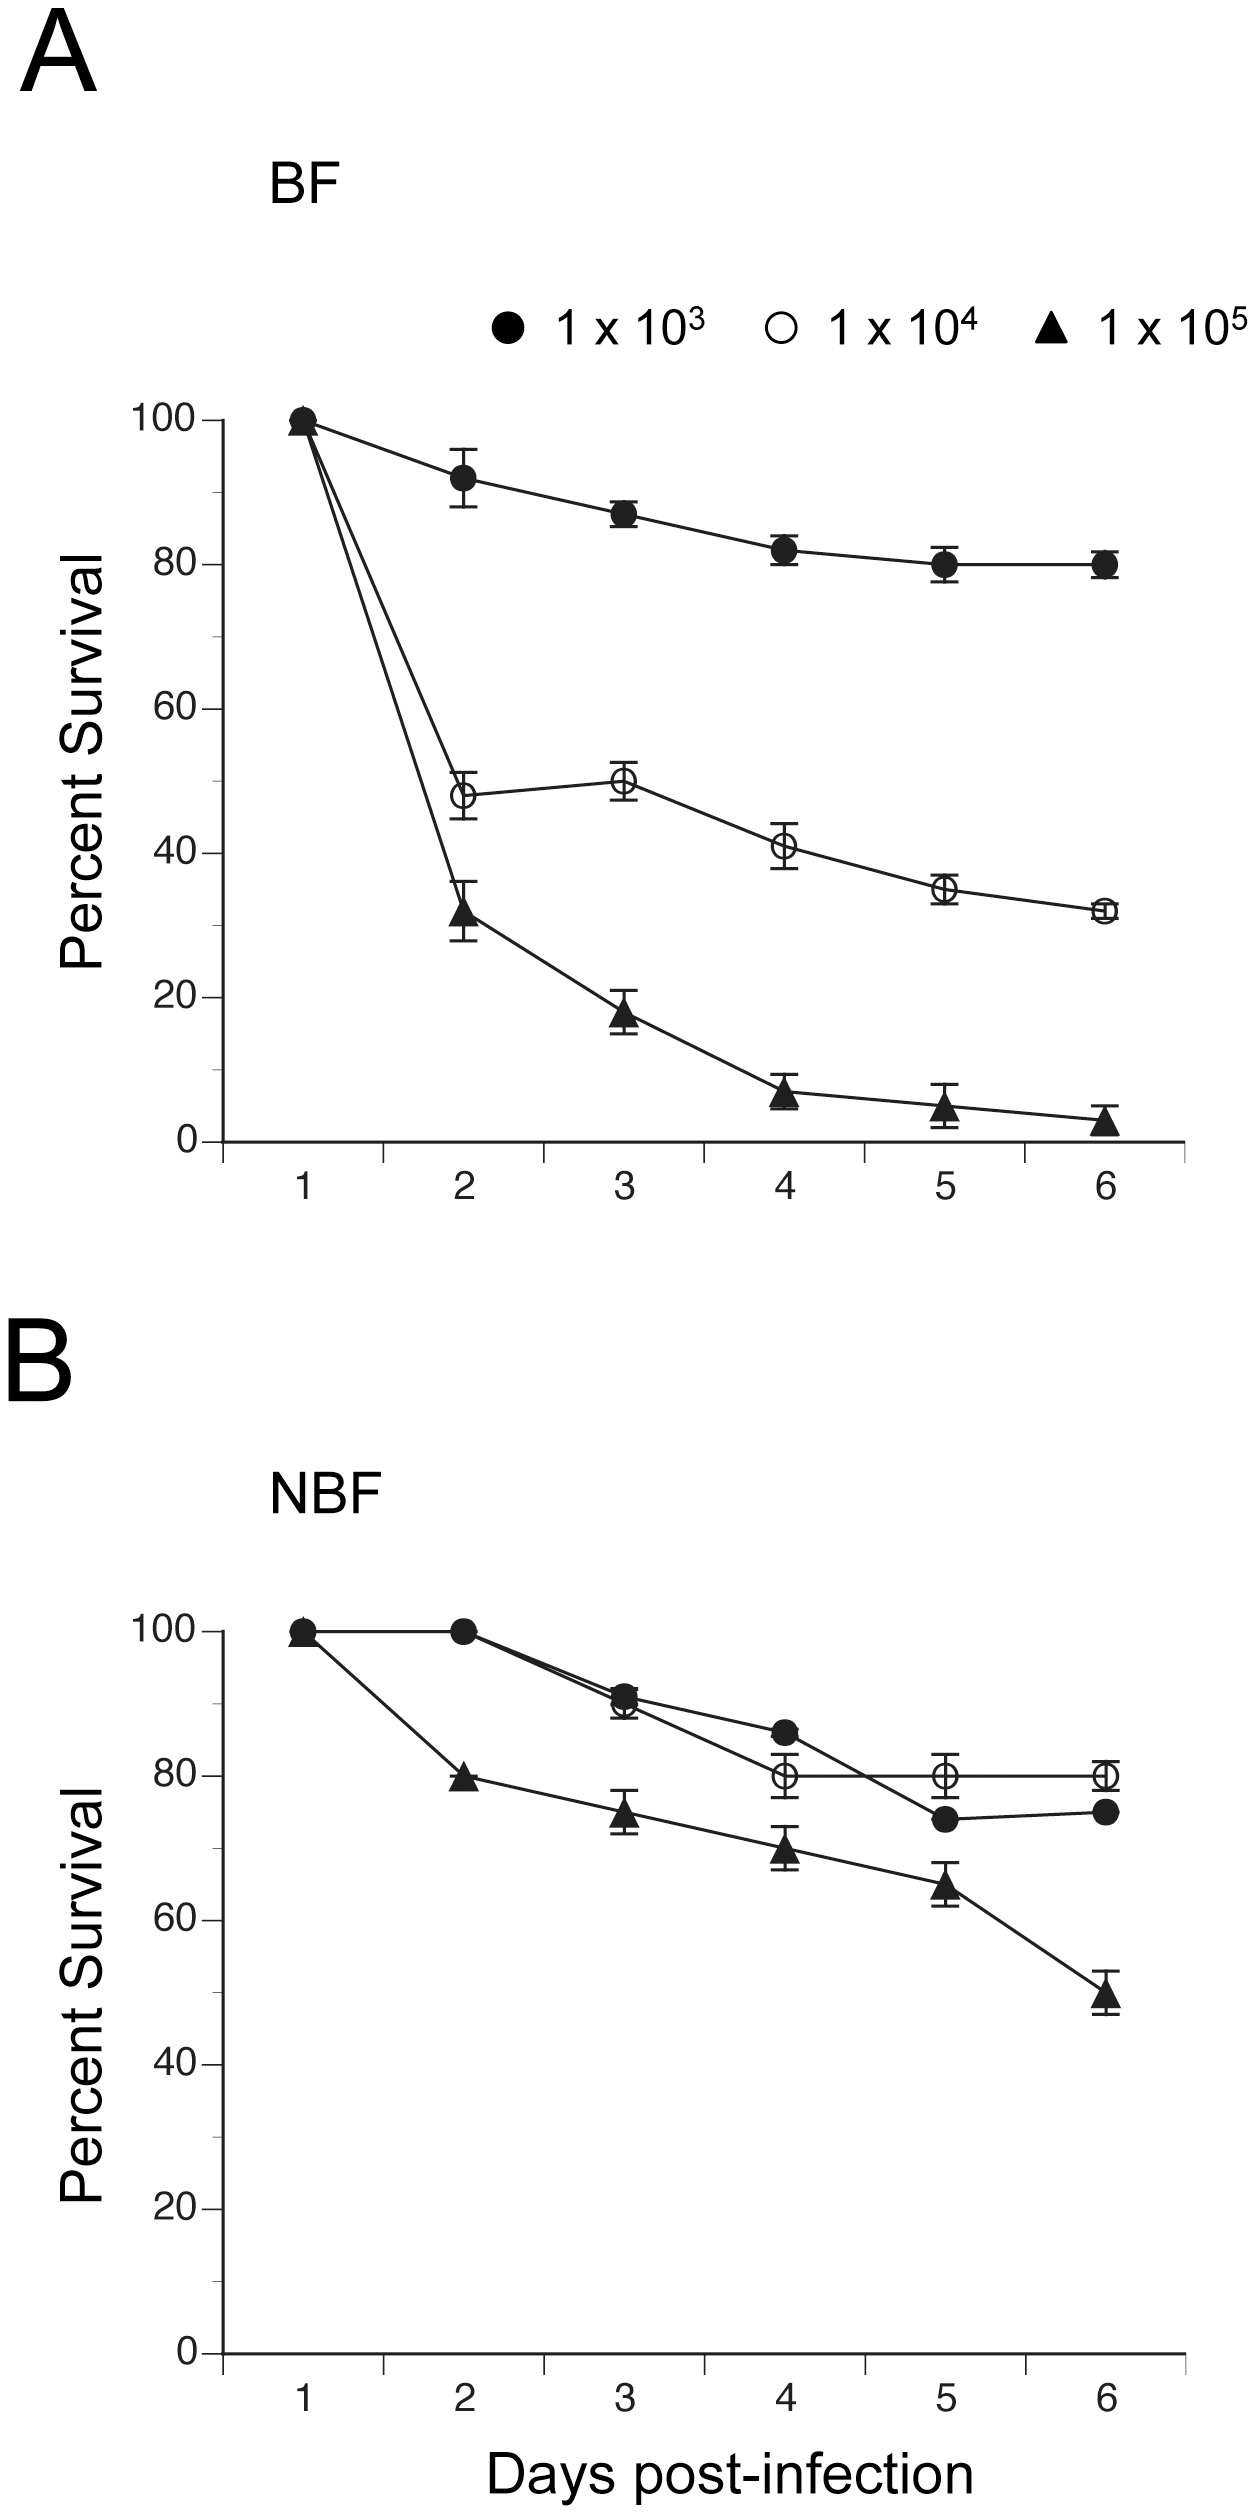 Survival curves (± 1 SE) for BF and NBF females fed on day 4 and infected 24 h pbm (day 5) with different doses of <i>E. coli</i>.